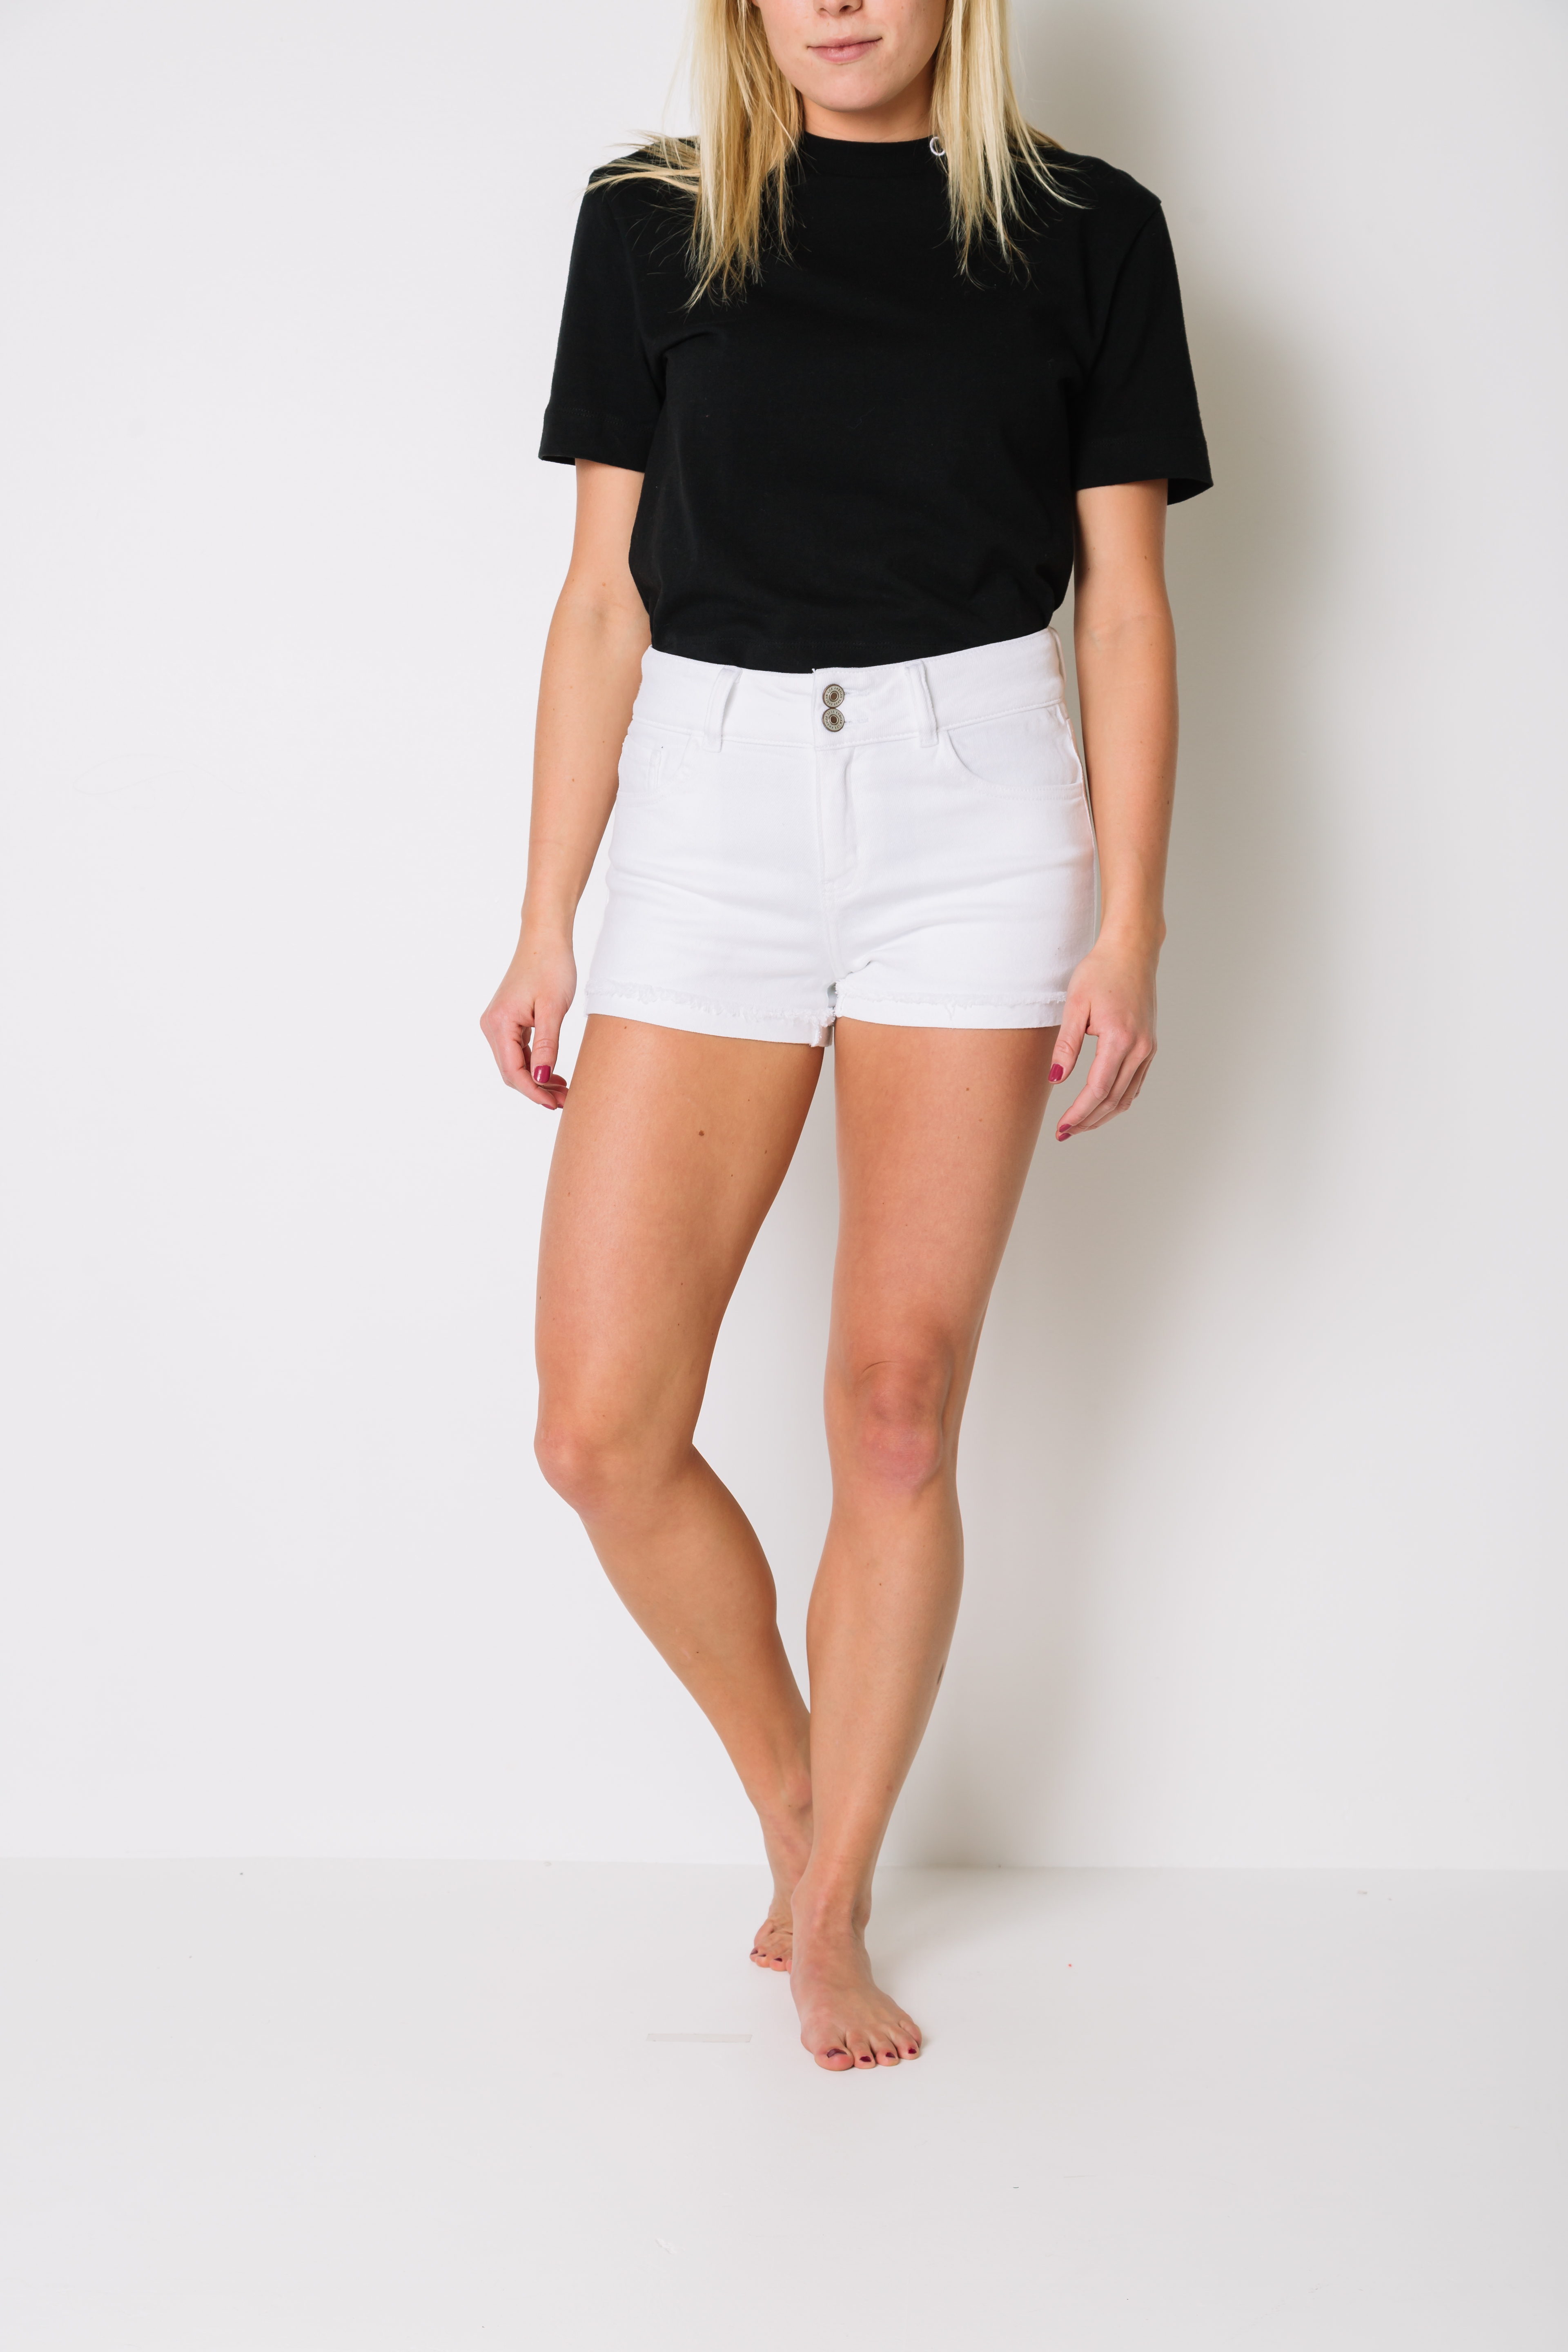 Women's Midi Jean Short at Buckle